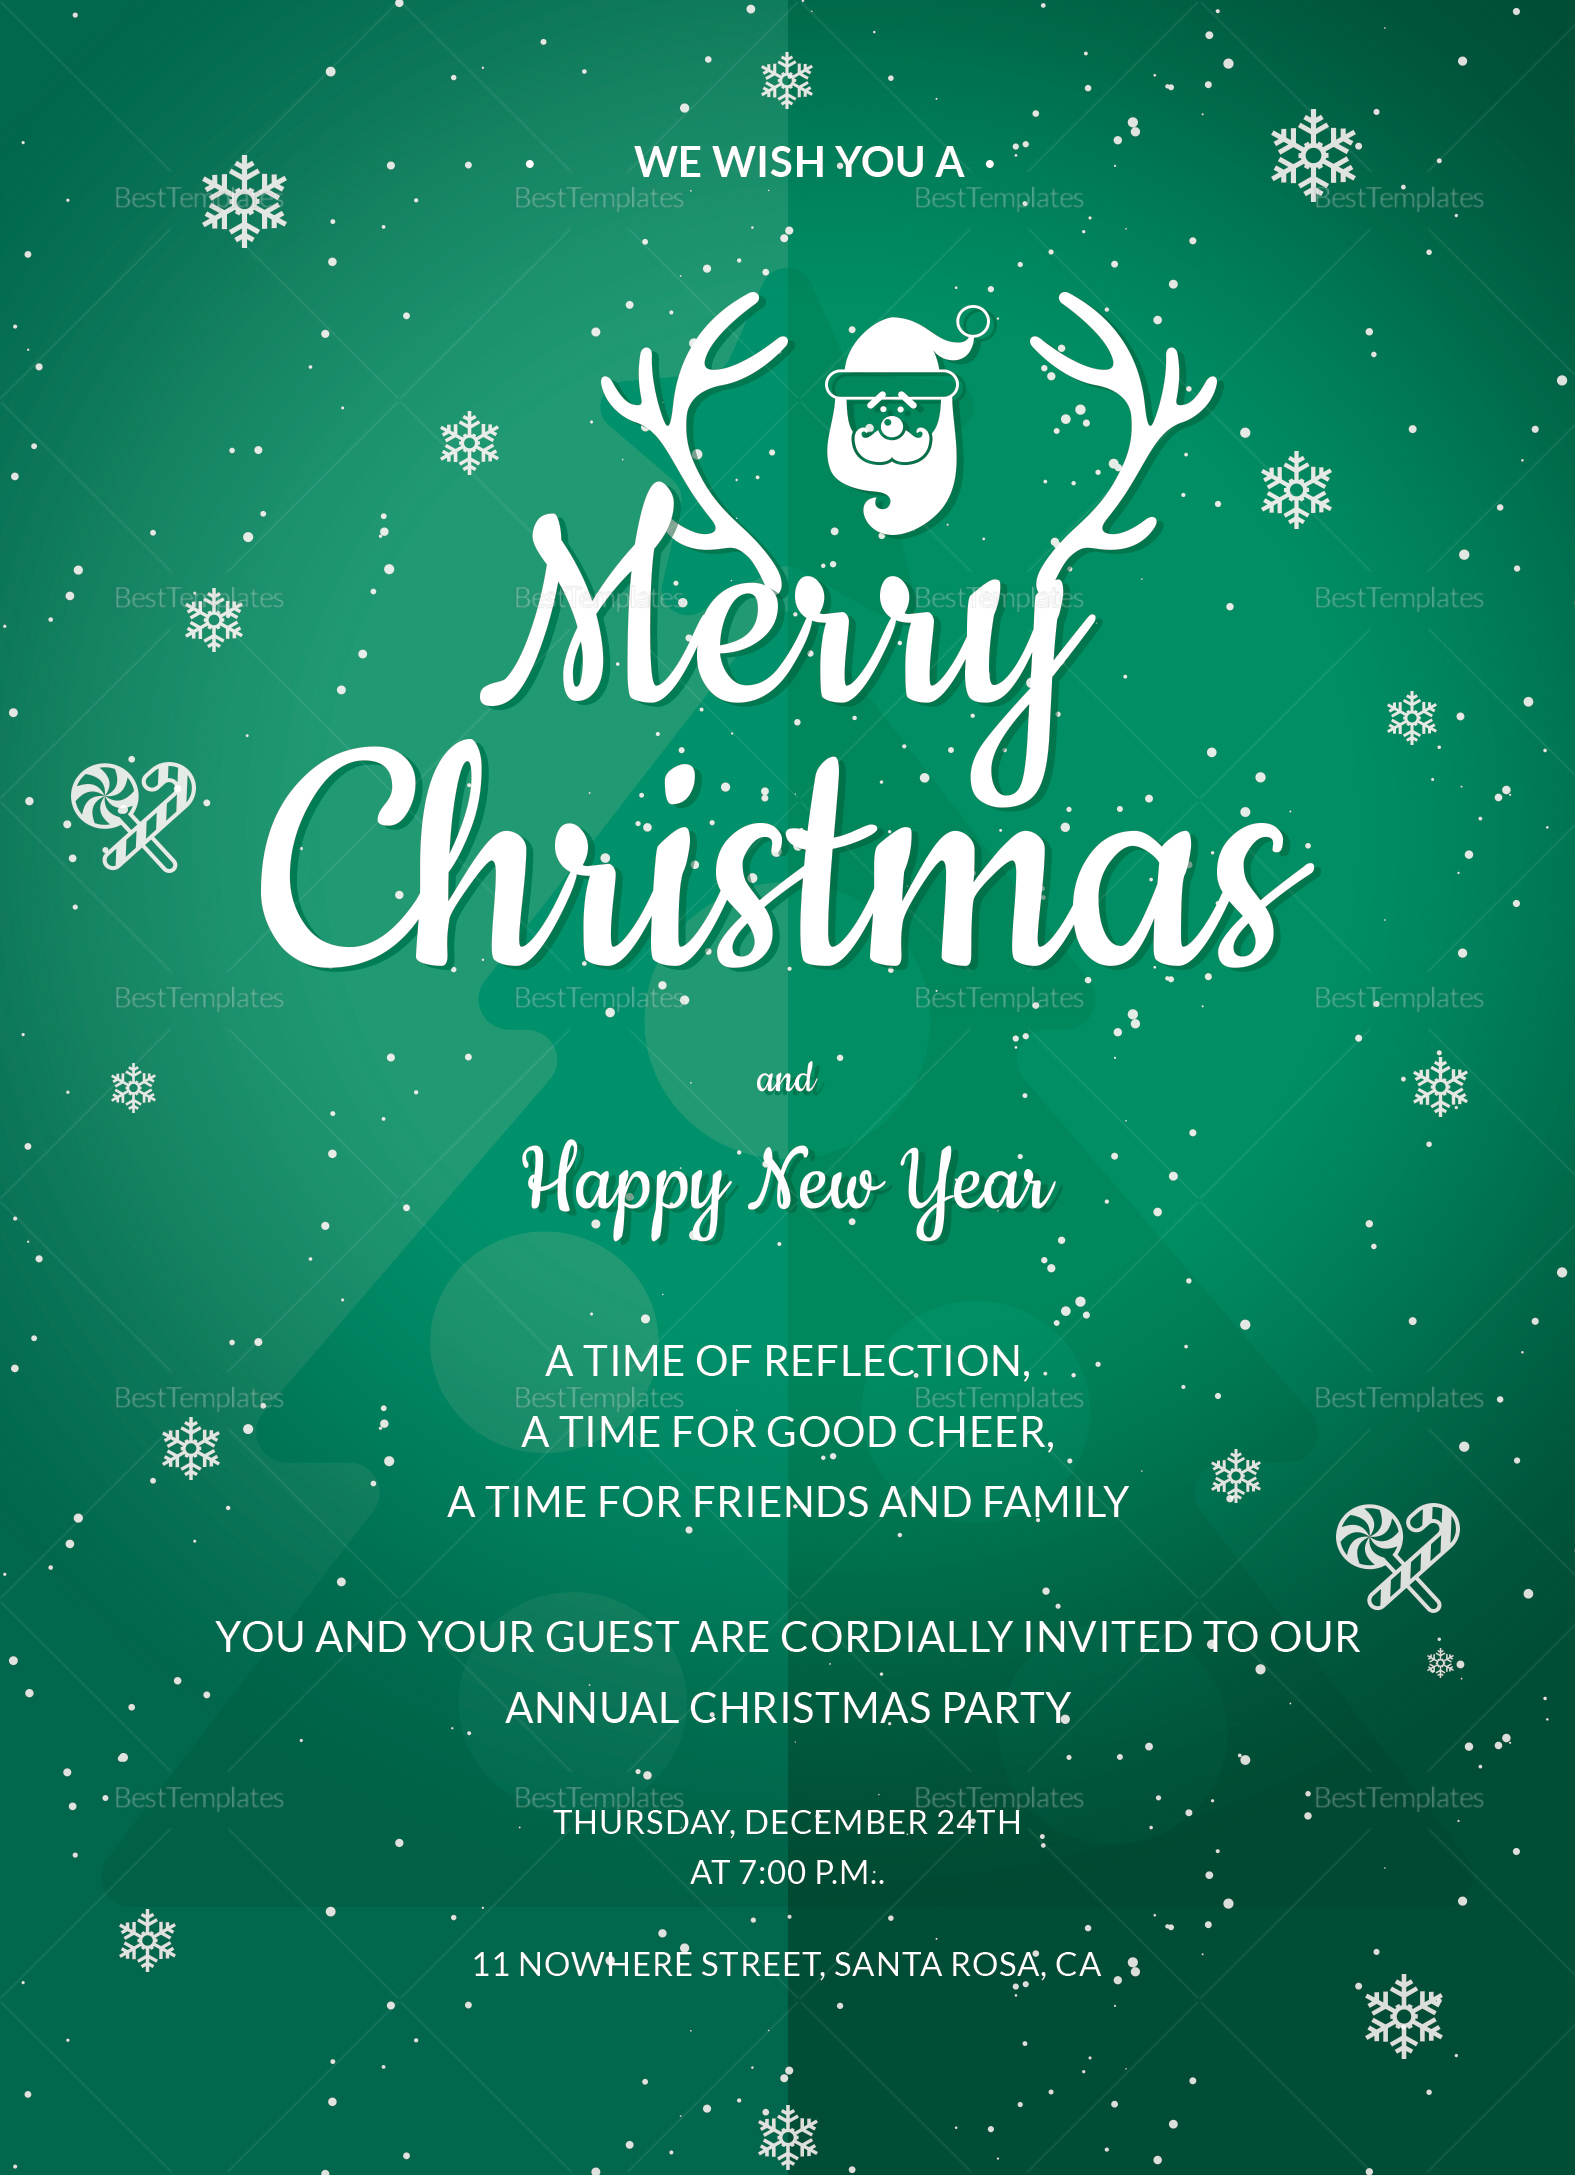 Annual Christmas Party Invitation